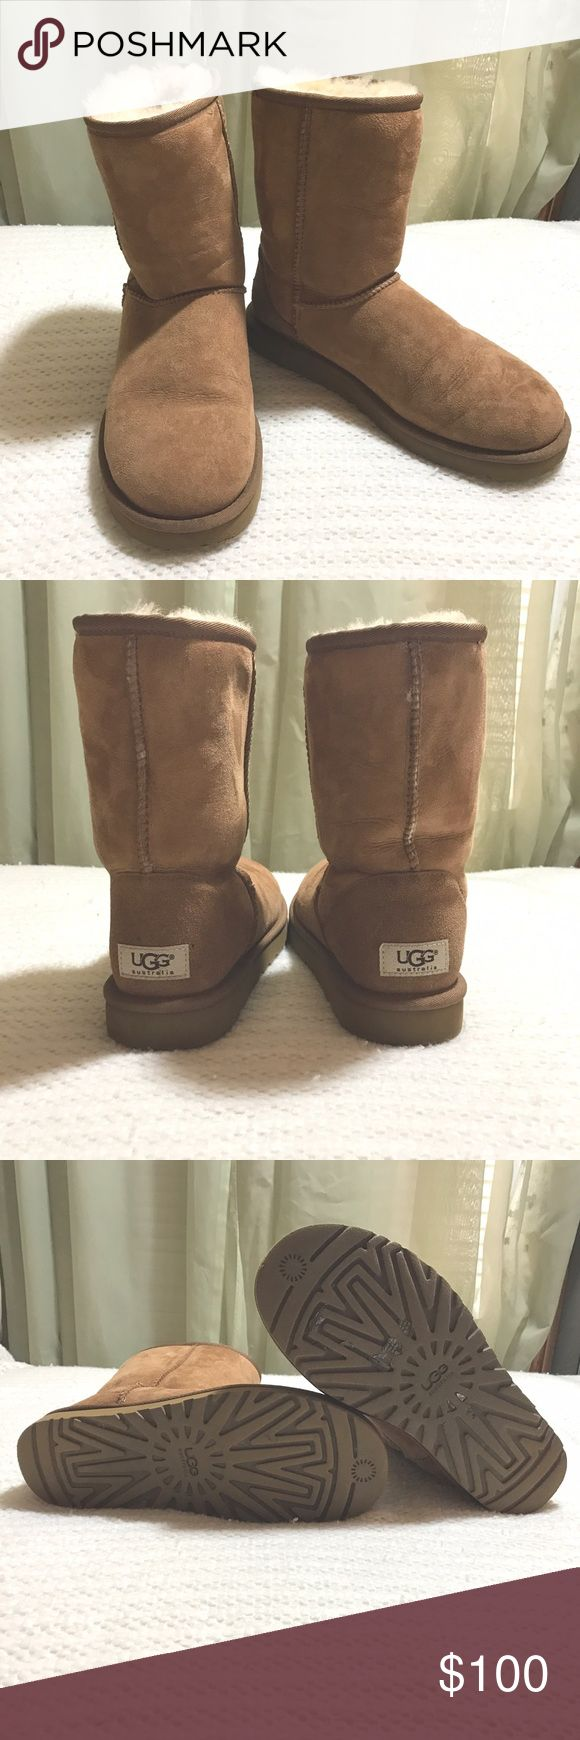 Ugg Chestnut Tan Classic Short Boots Like New Authentic Ugg Chestnut Tan Classic Short Boot in Size 8. I purchased these online at Victoria's Secret and wore them once or twice. They are in beautiful condition. I received a new pair similar to these this Christmas so I decided to part with these. These retail for $160. UGG Shoes Winter & Rain Boots